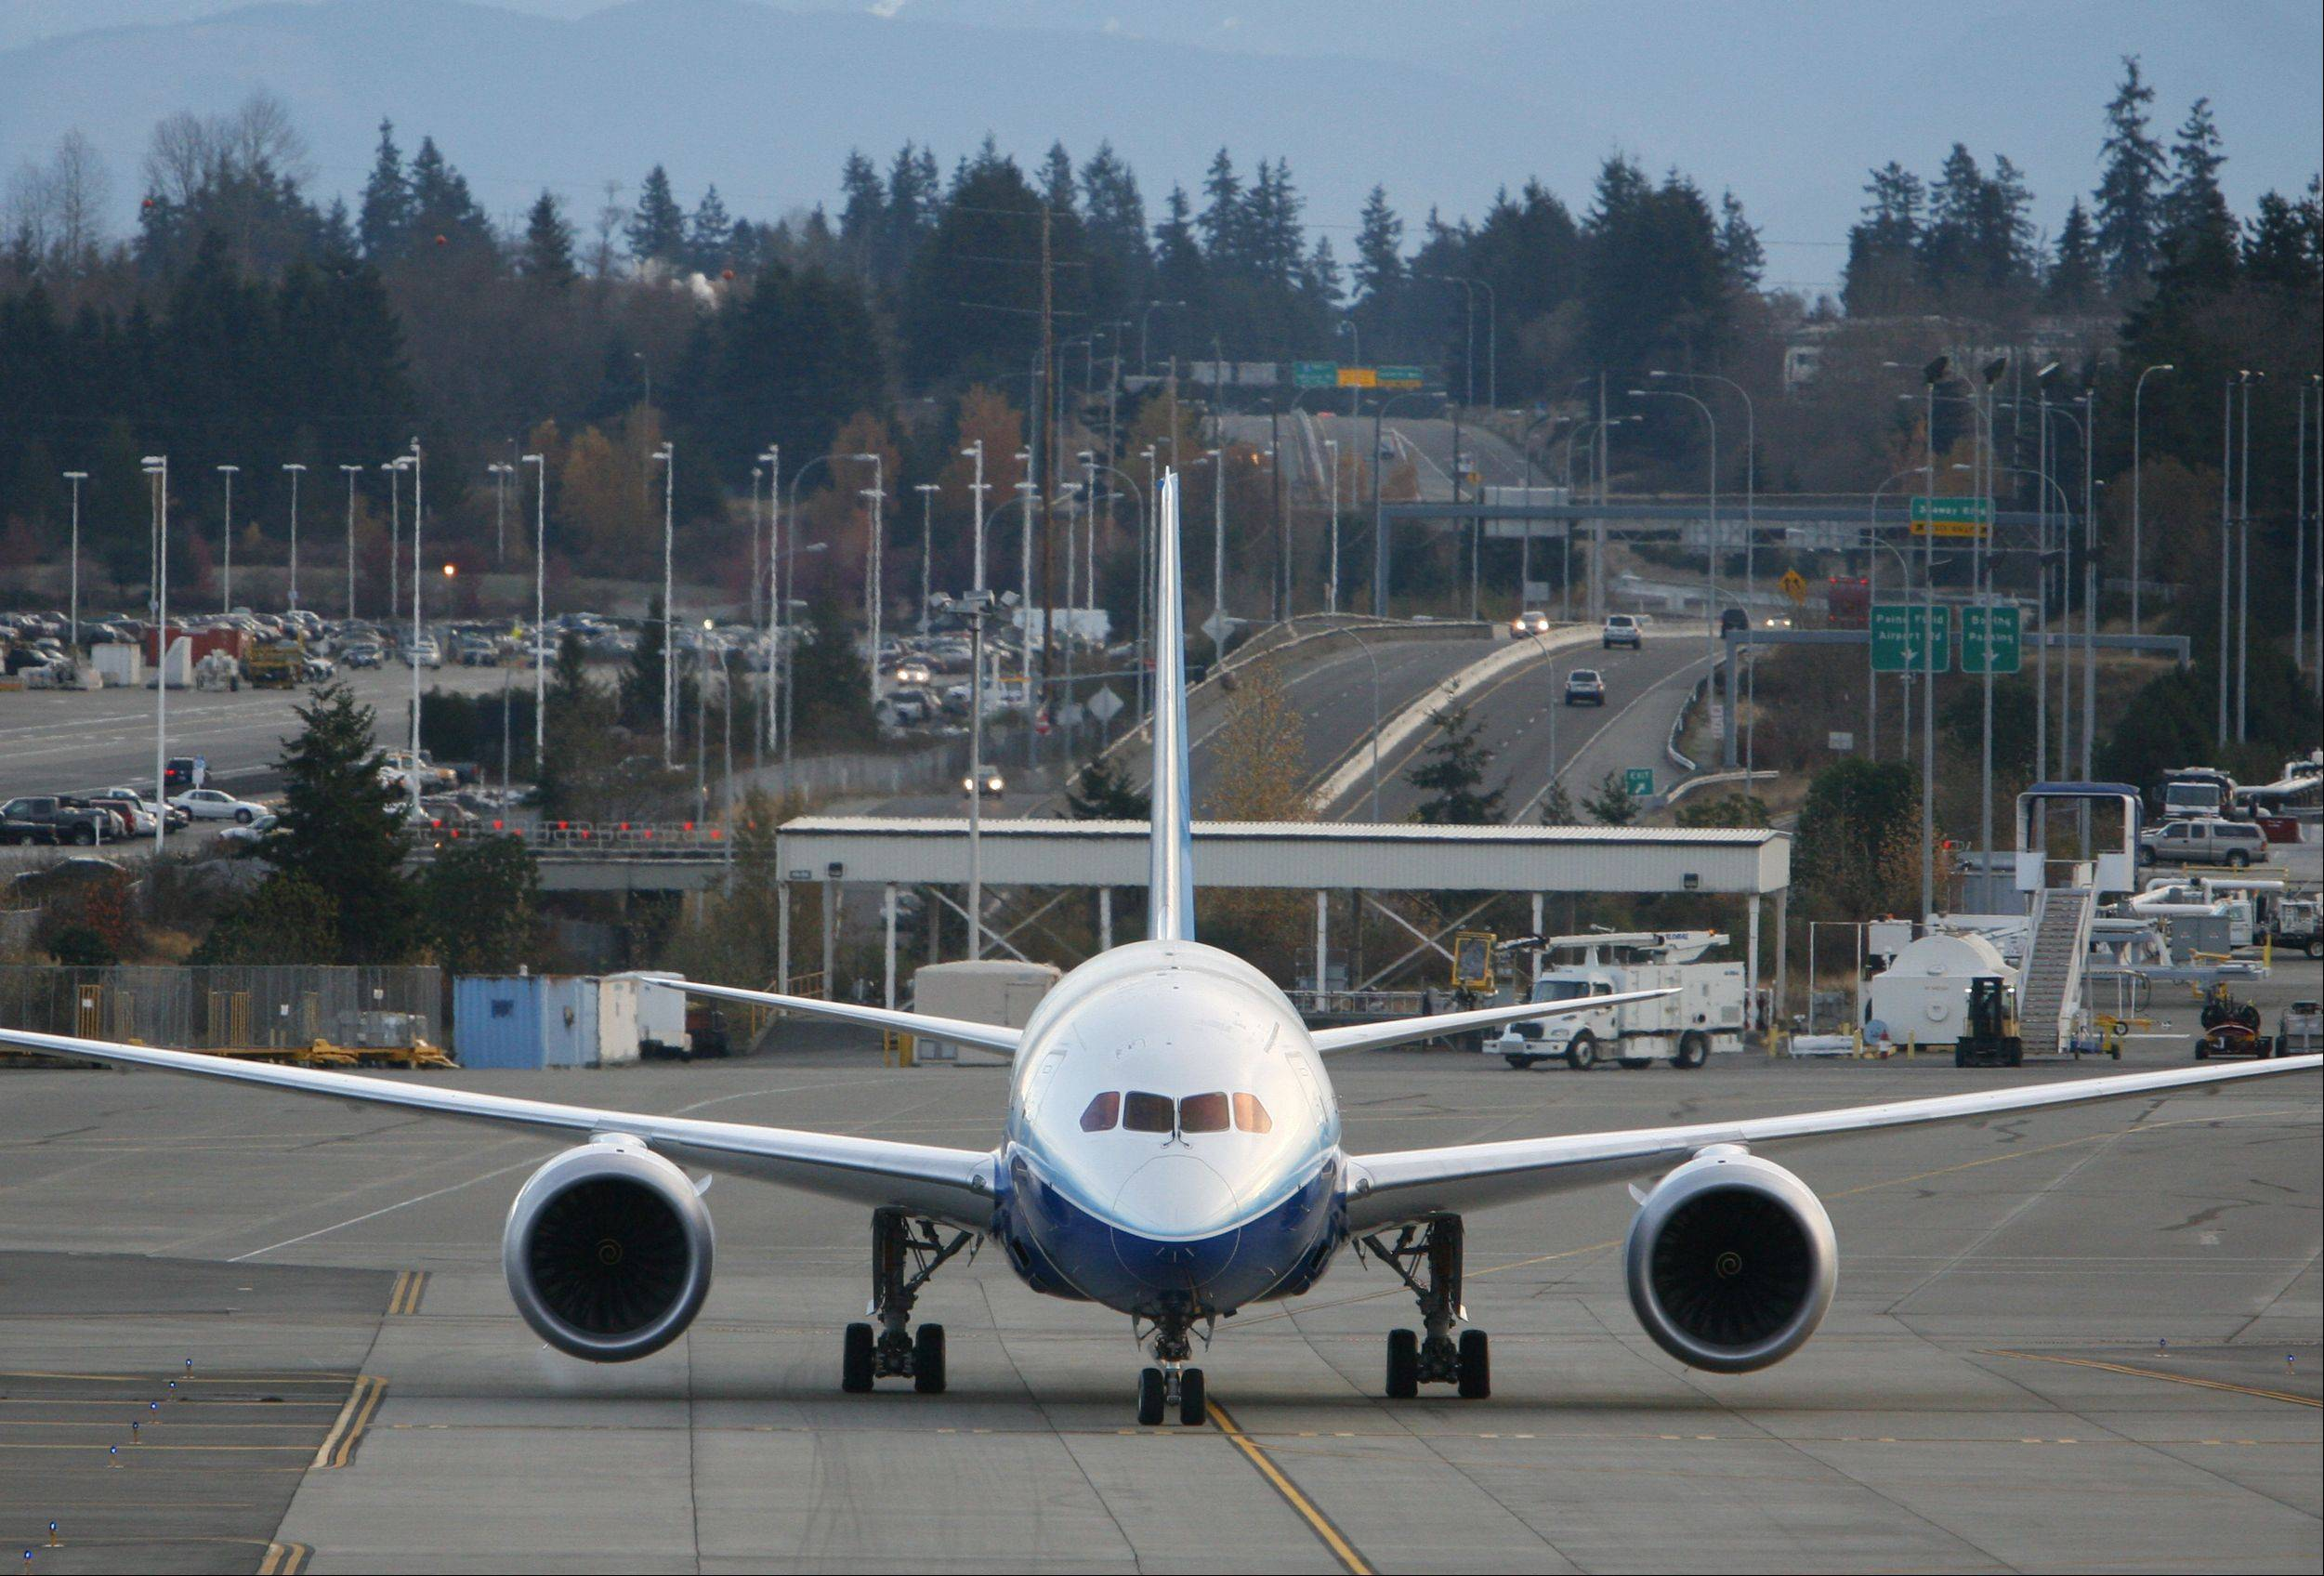 Federal regulators say they are ordering a comprehensive review of the critical systems of Boeing's 787s, the aircraft maker's newest and most technologically advanced plane, after a fire and a fuel leak earlier this week.